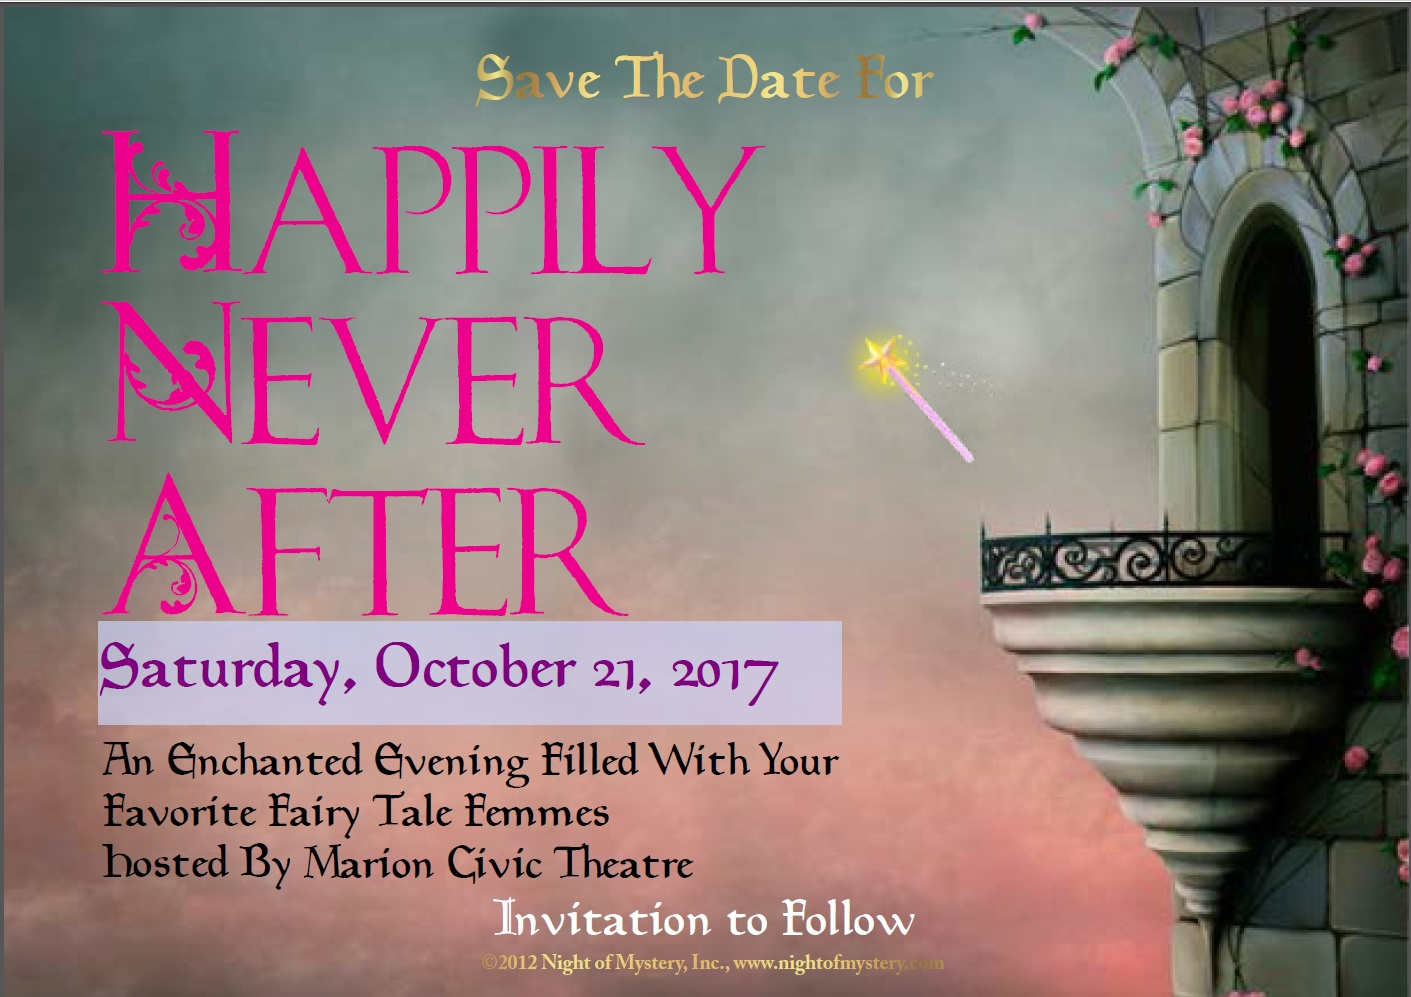 Happily Never After by NightofMystery.com